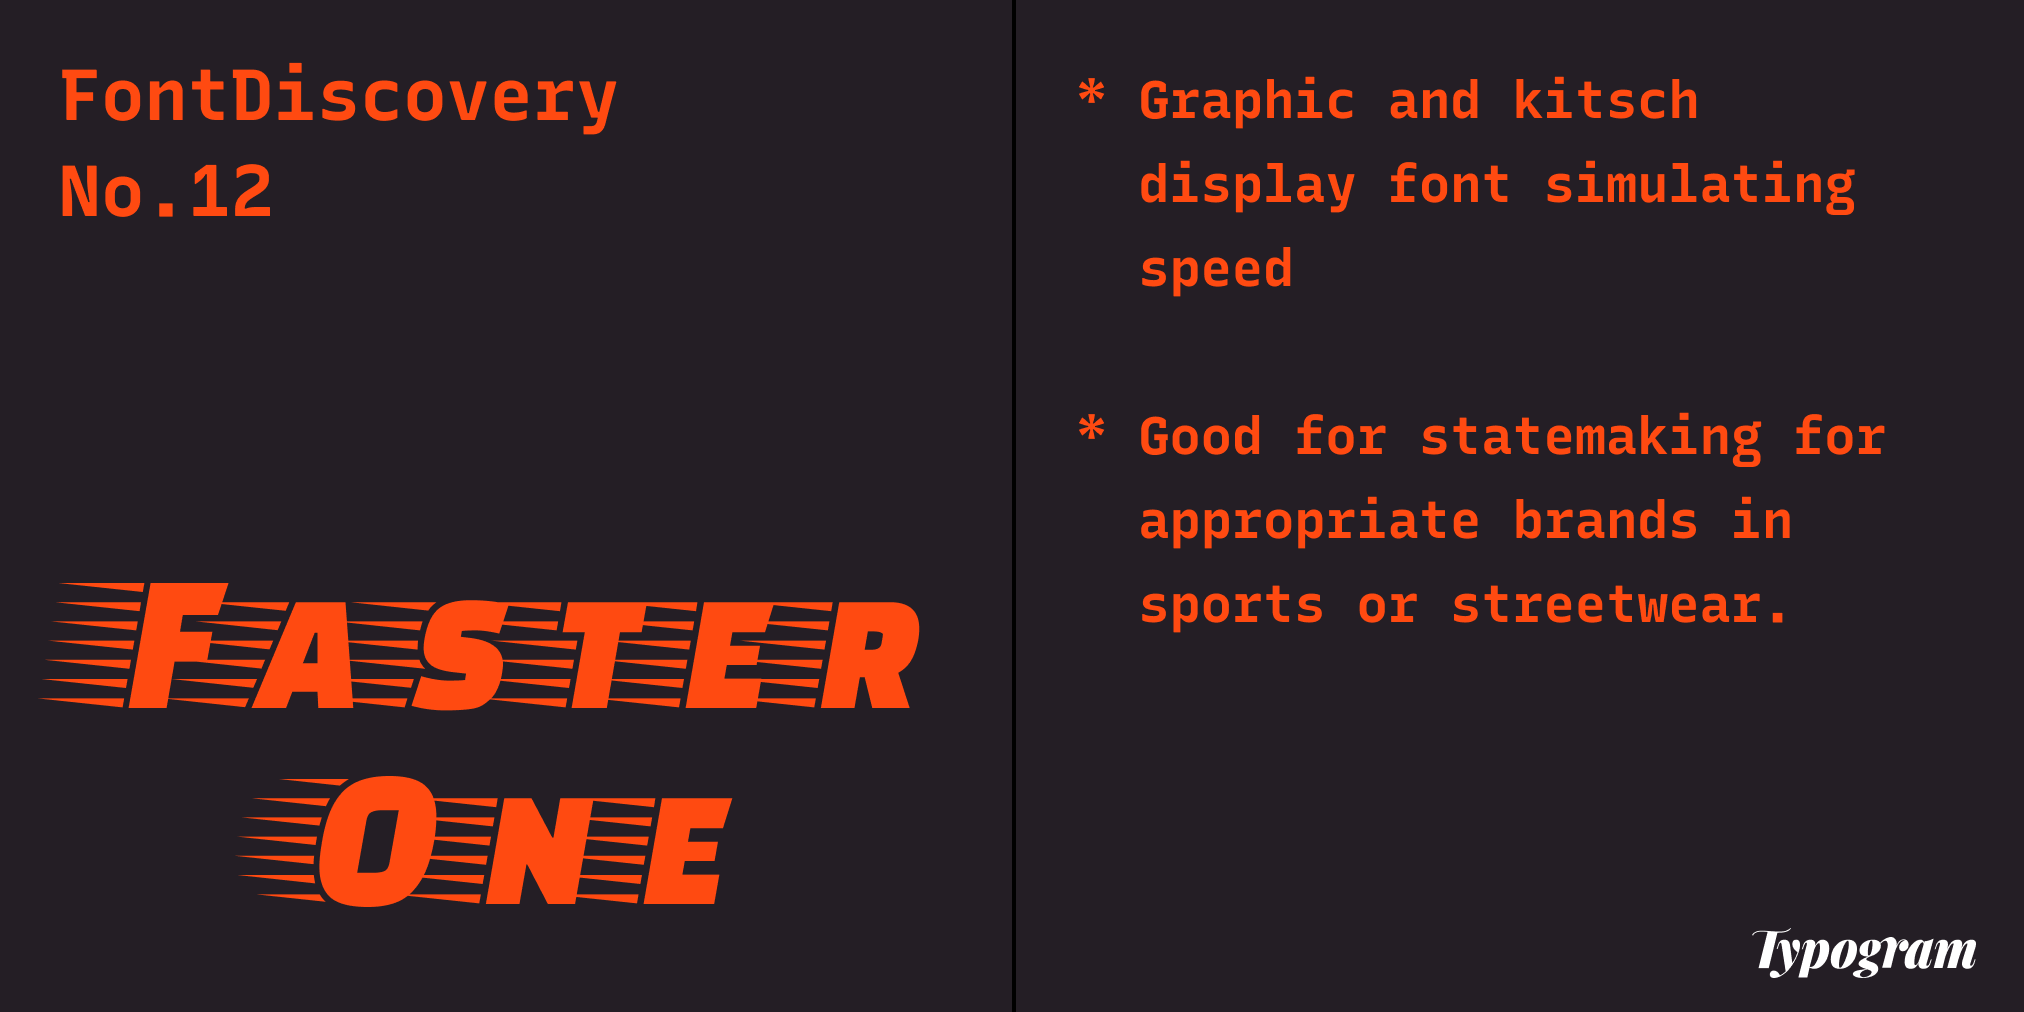 /how-to-use-faster-one-font-quick-tips-wj1133s4 feature image